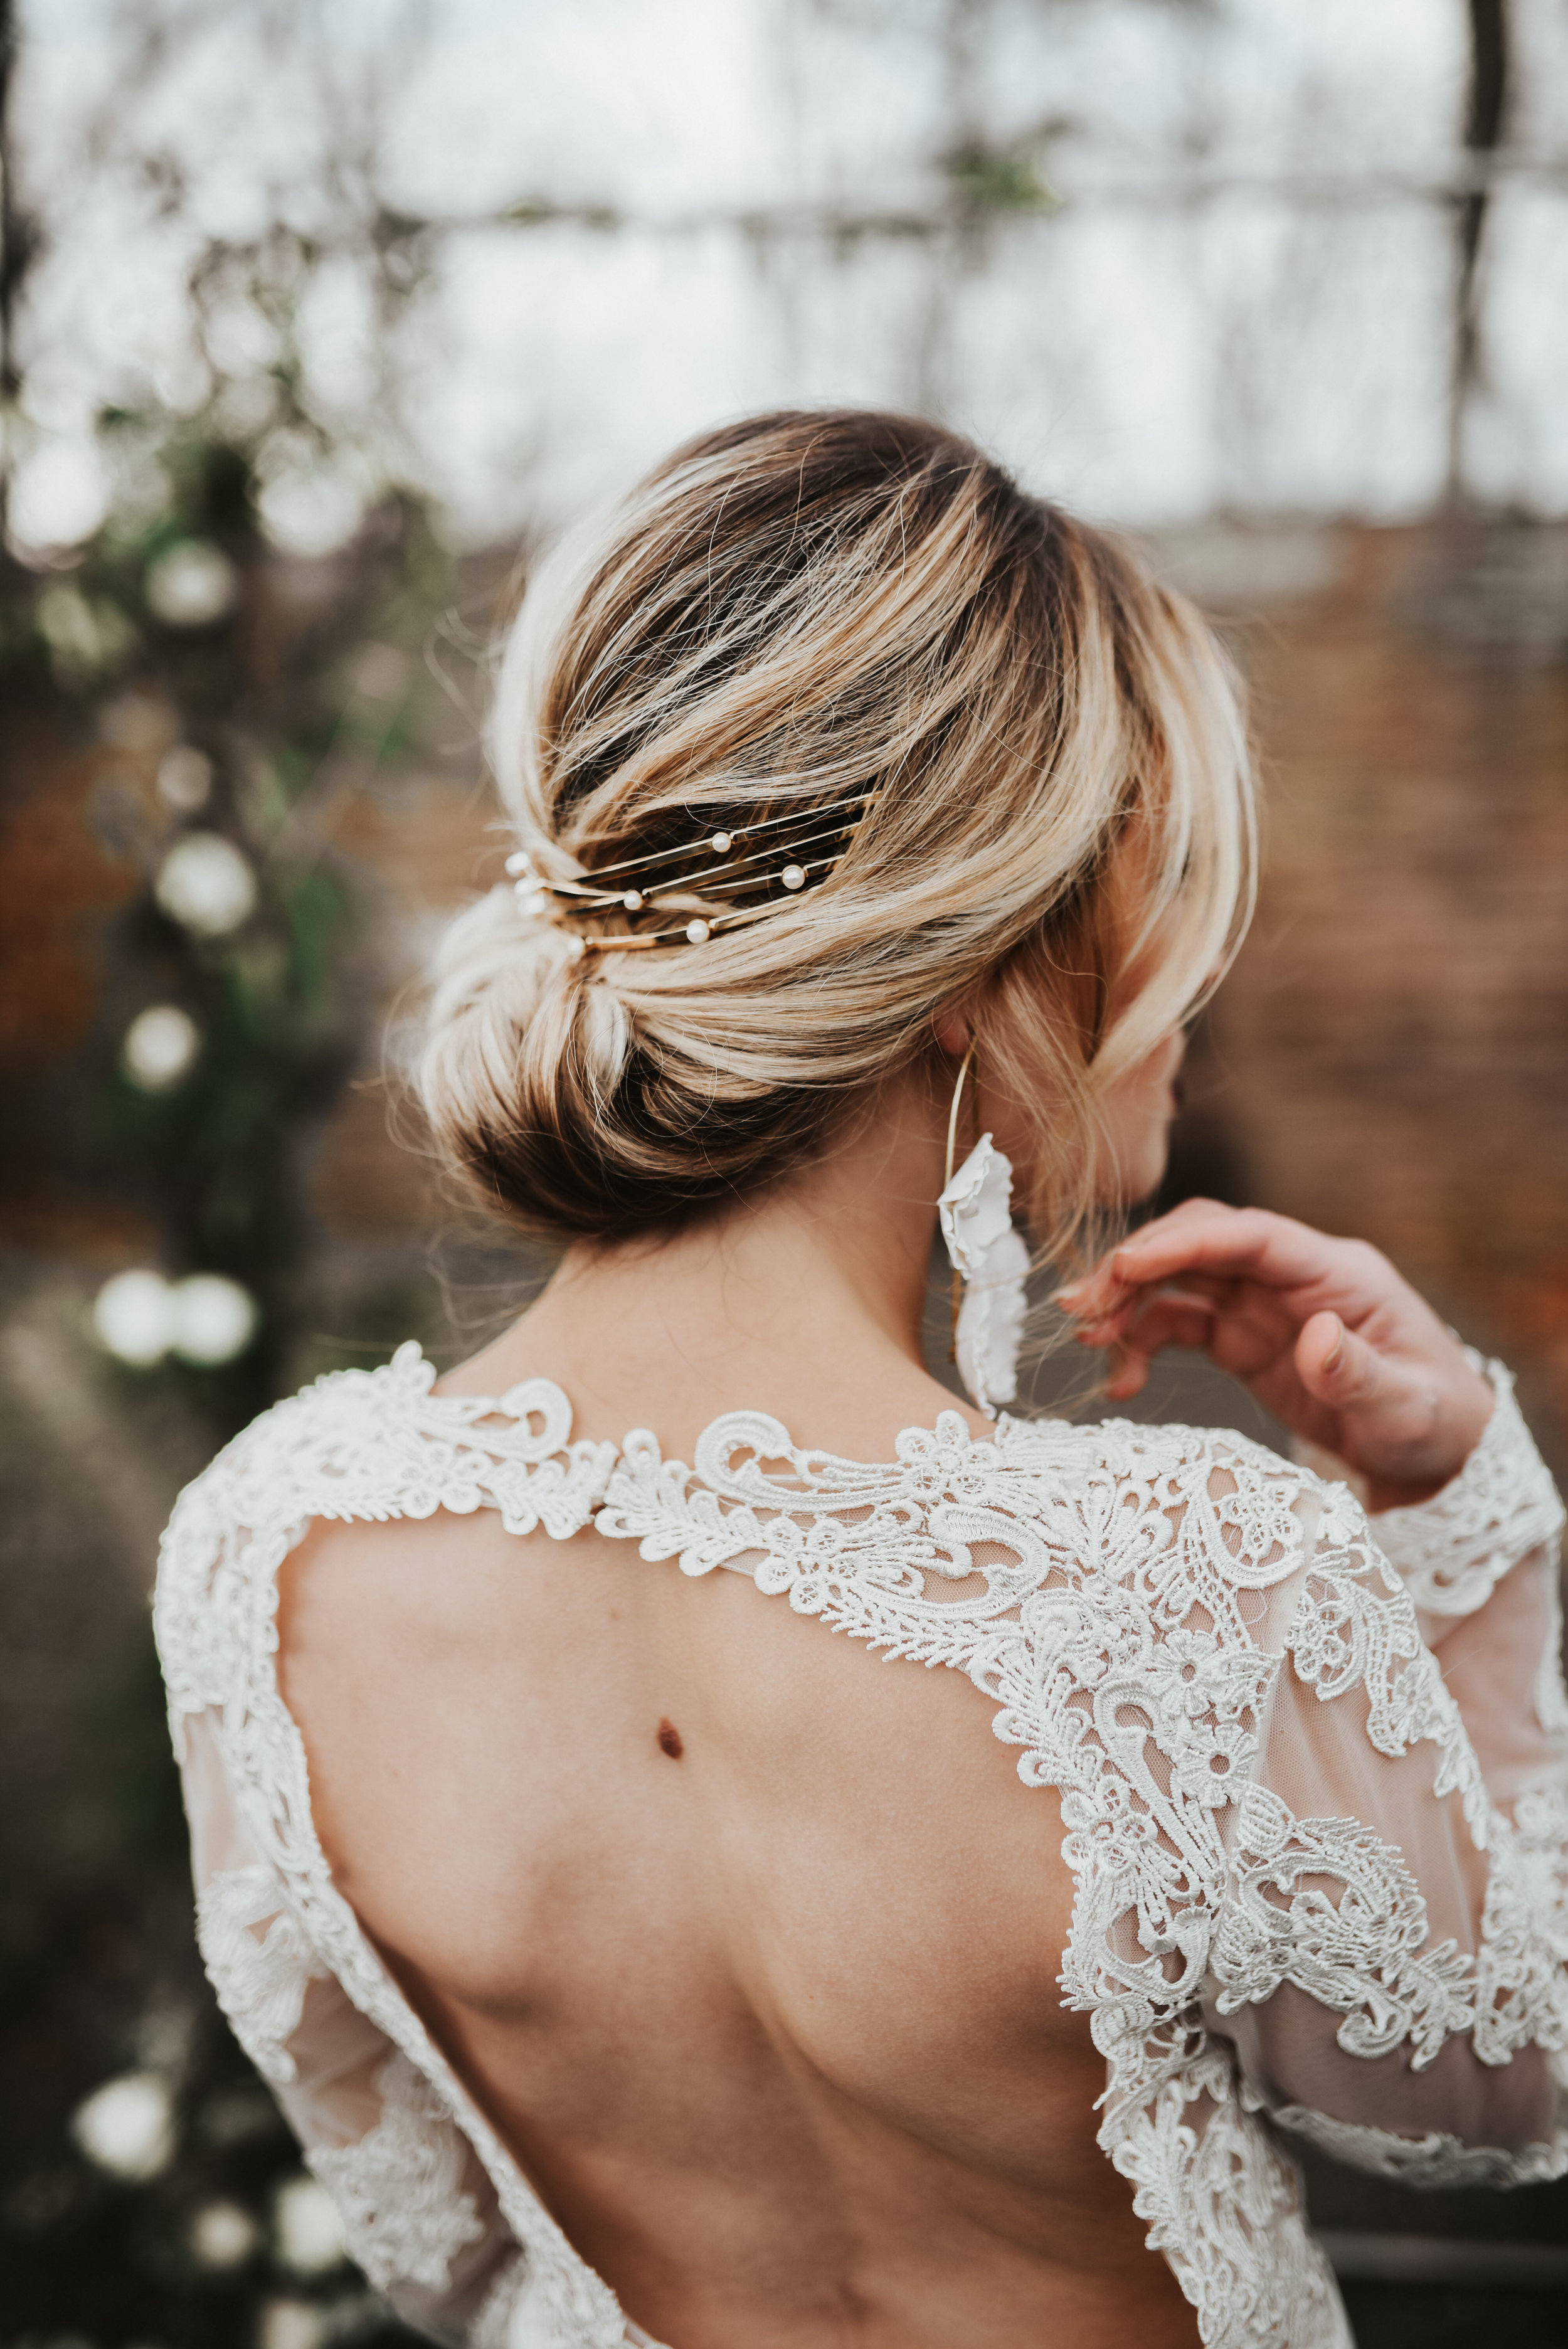 wedding hair style updo with accessory